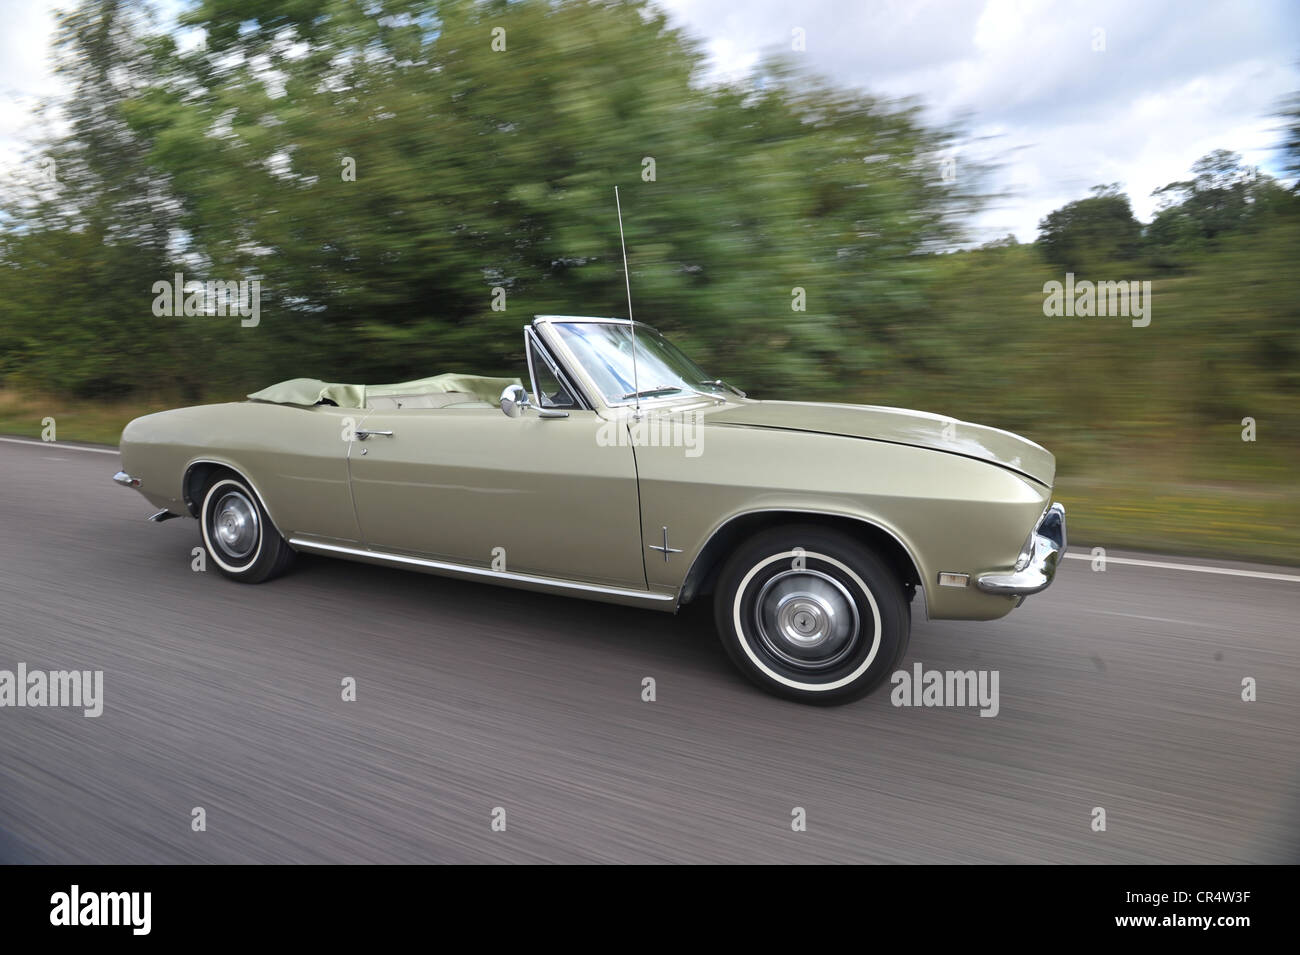 Chevrolet corvair convertible classic american rear engine for Classic american convertibles